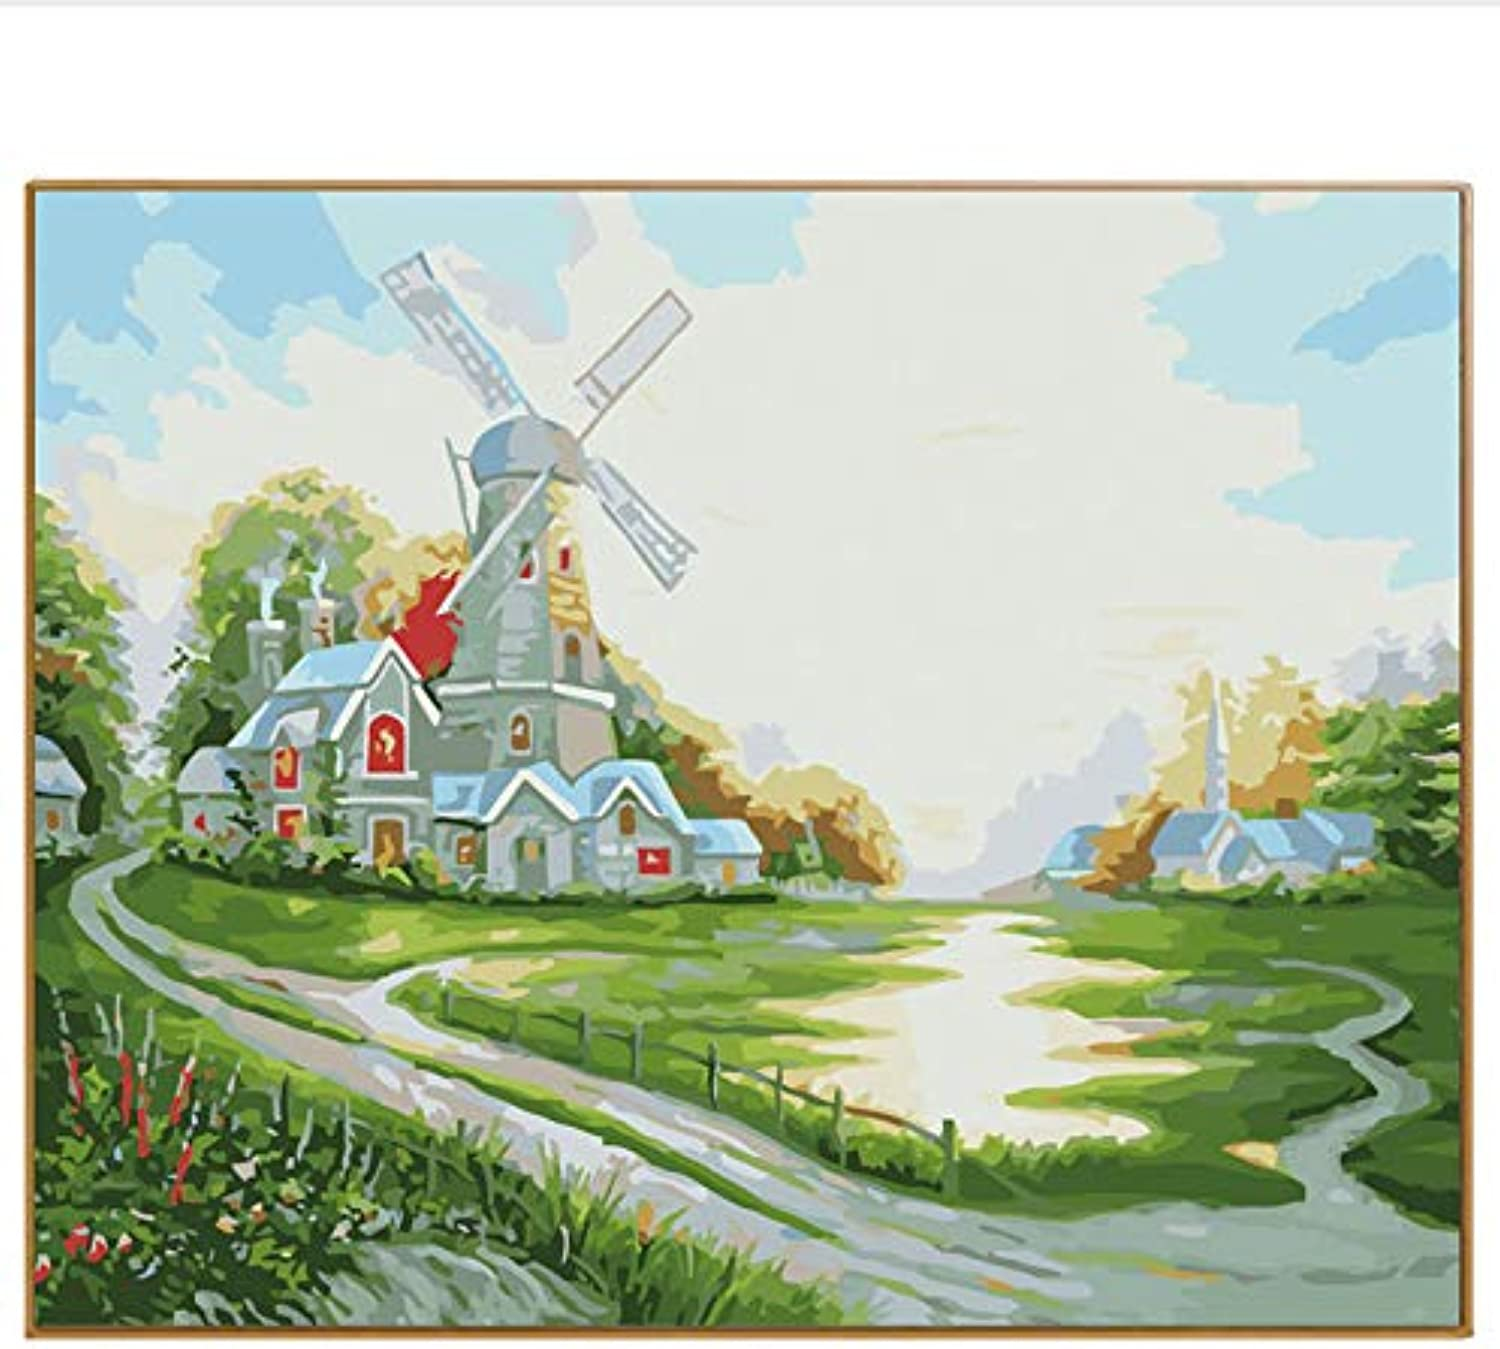 DIY Wall Pictures For Living Room Modern Landscape Windmill Oil Painting By Numbers Kits Drawing Paint On Canvas Wall Art, Framed, 50x60cm